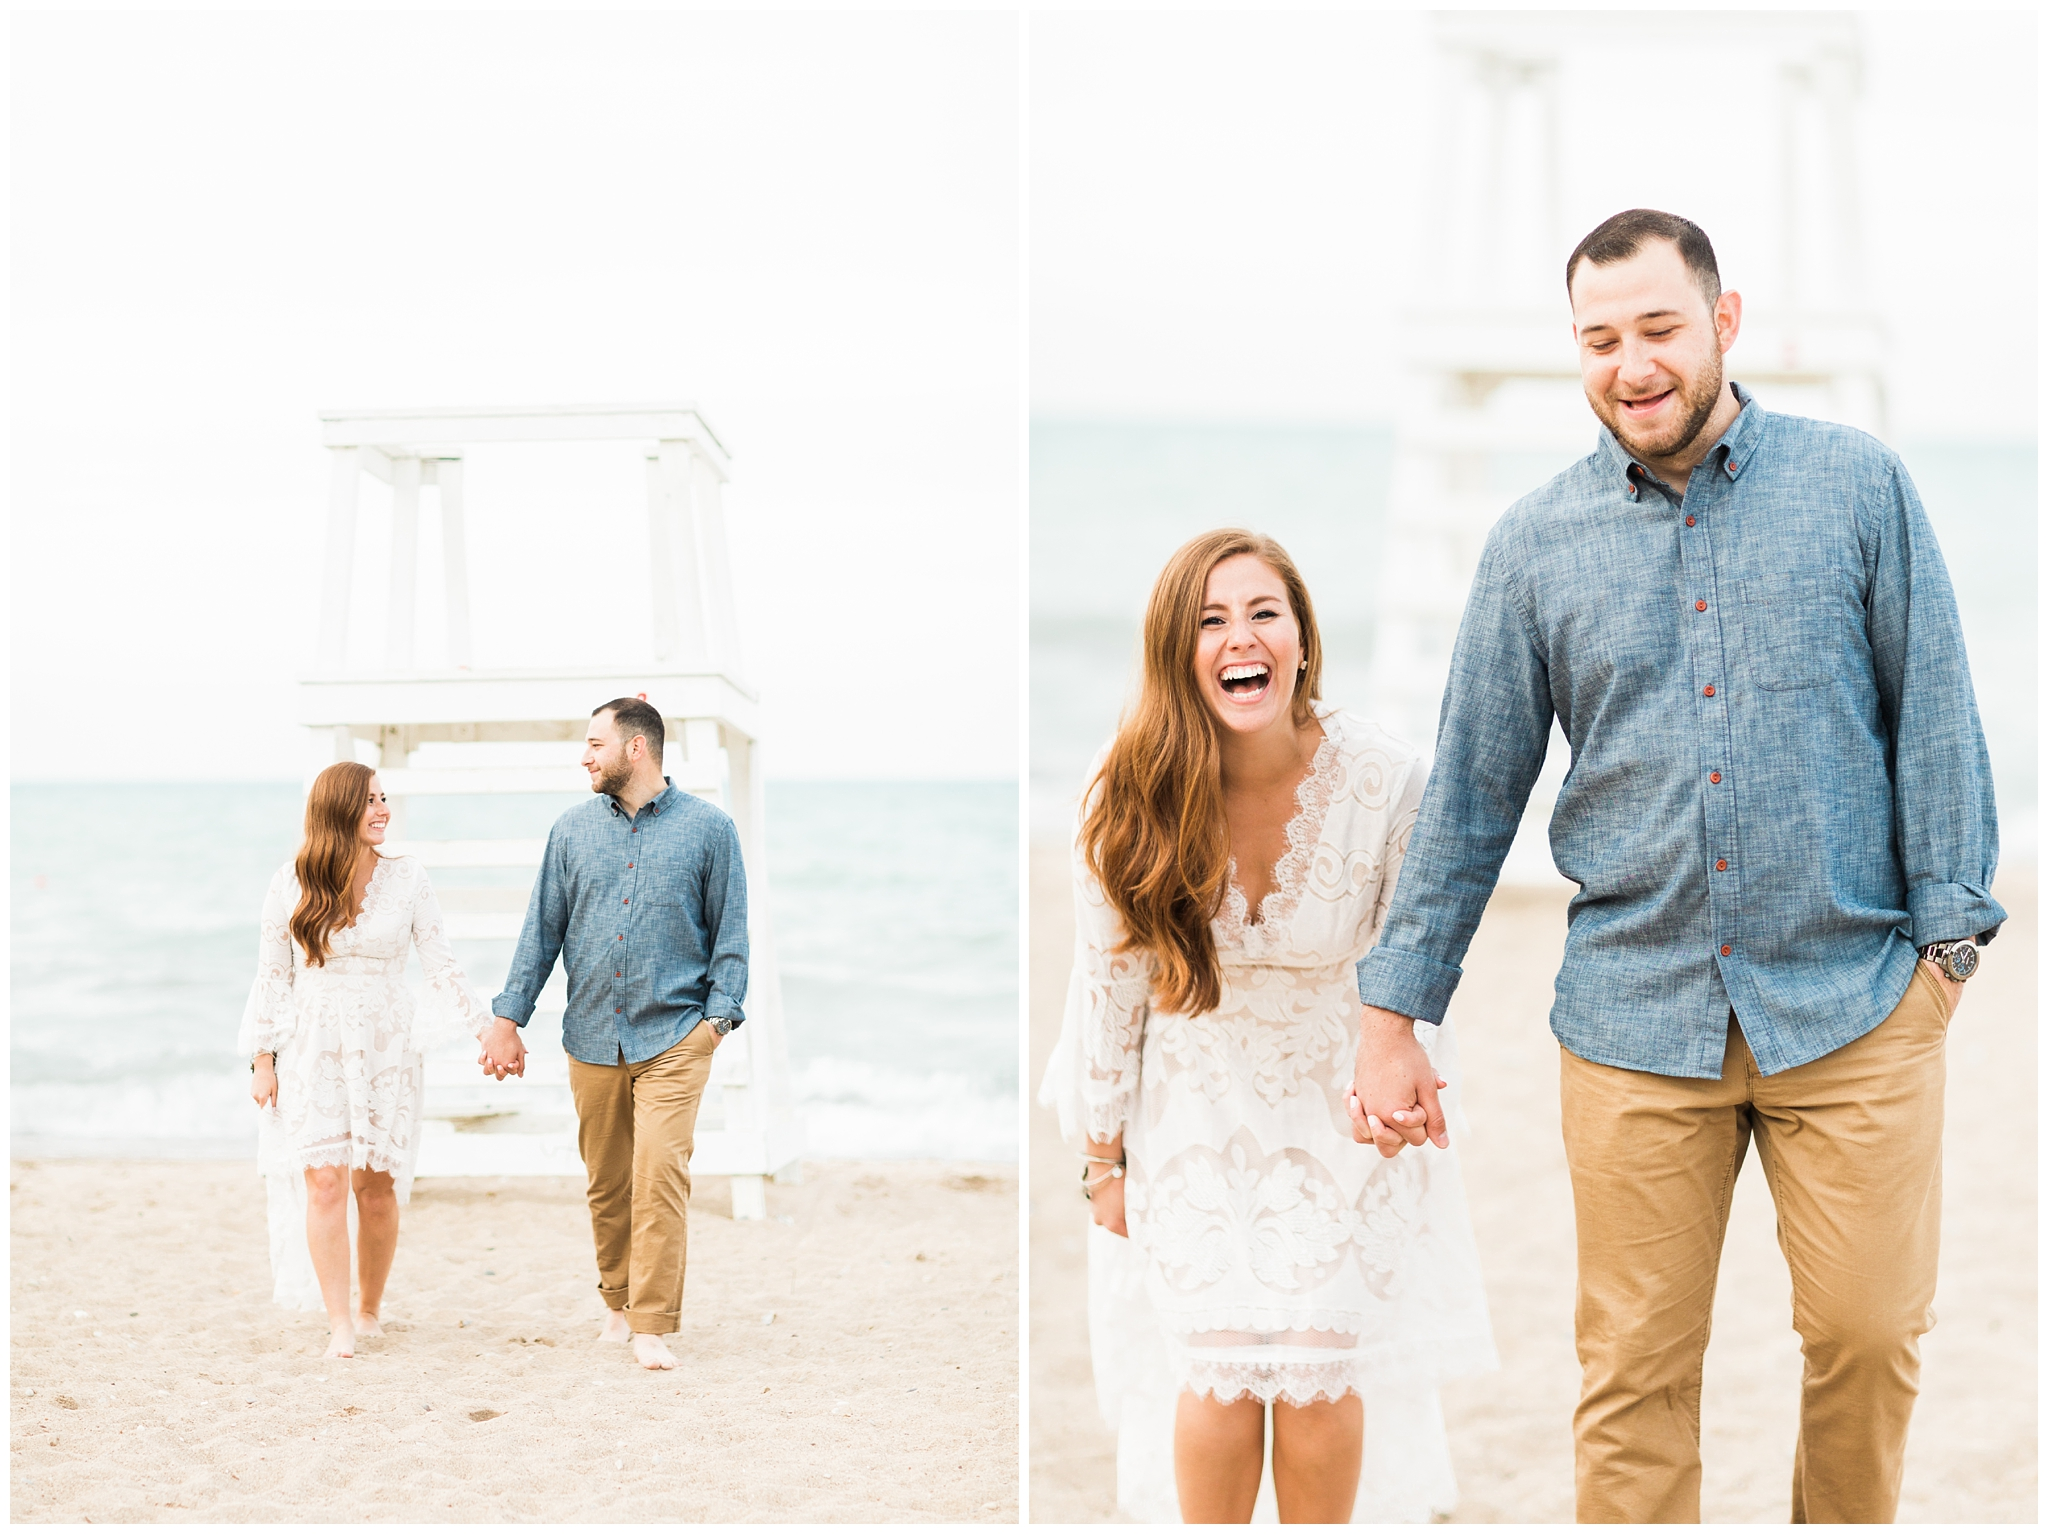 RebeccaHaleyPhotography_chicagoengagementsession_lakemichiganengagementsession_coloradoengagementphotographer_evanstonengagementphotographer_lighthousebeach_lighthousebeachengagementsession_0013.jpg